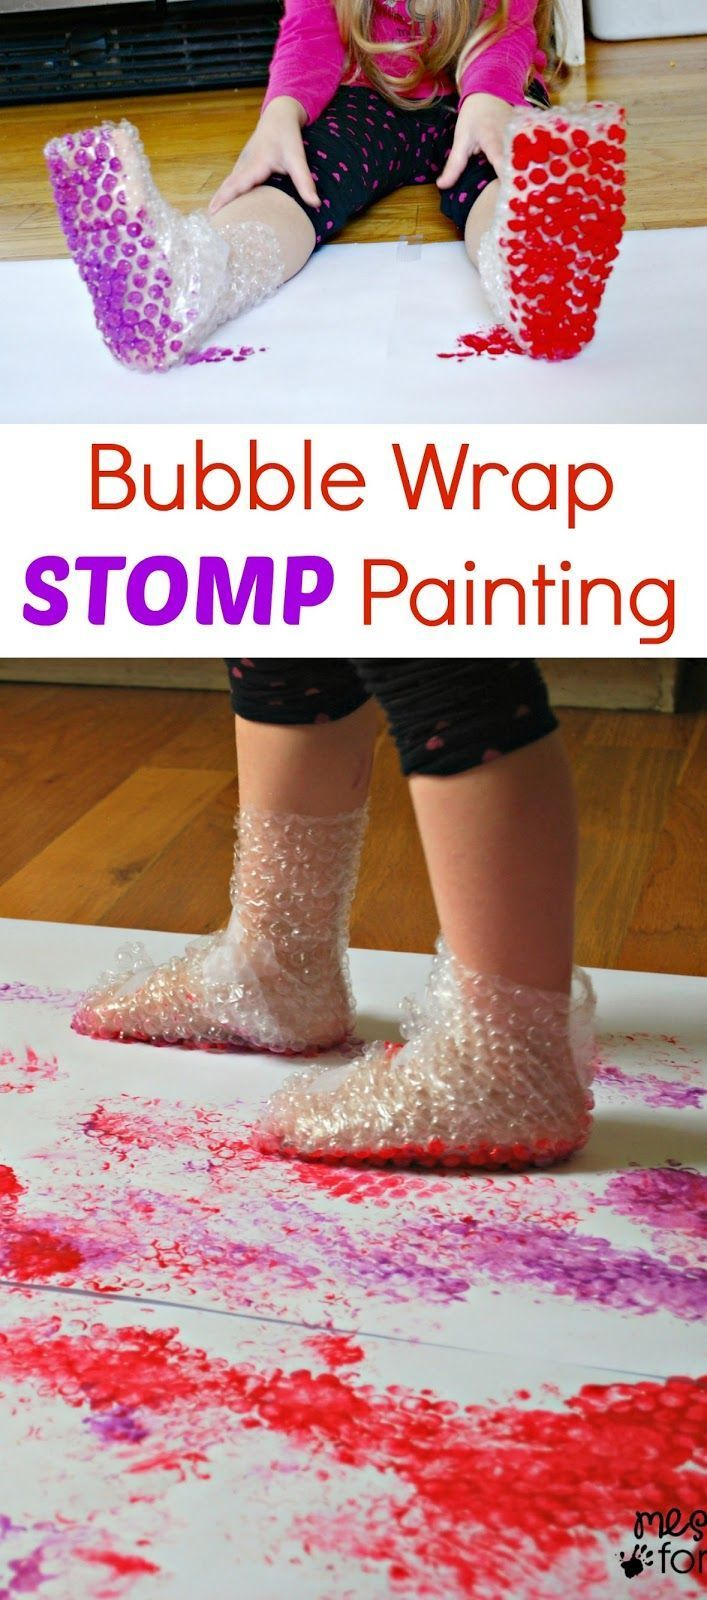 Bubble Wrap Stomp Painting - http://www.oroscopointernazionaleblog.com/bubble-wrap-stomp-painting/